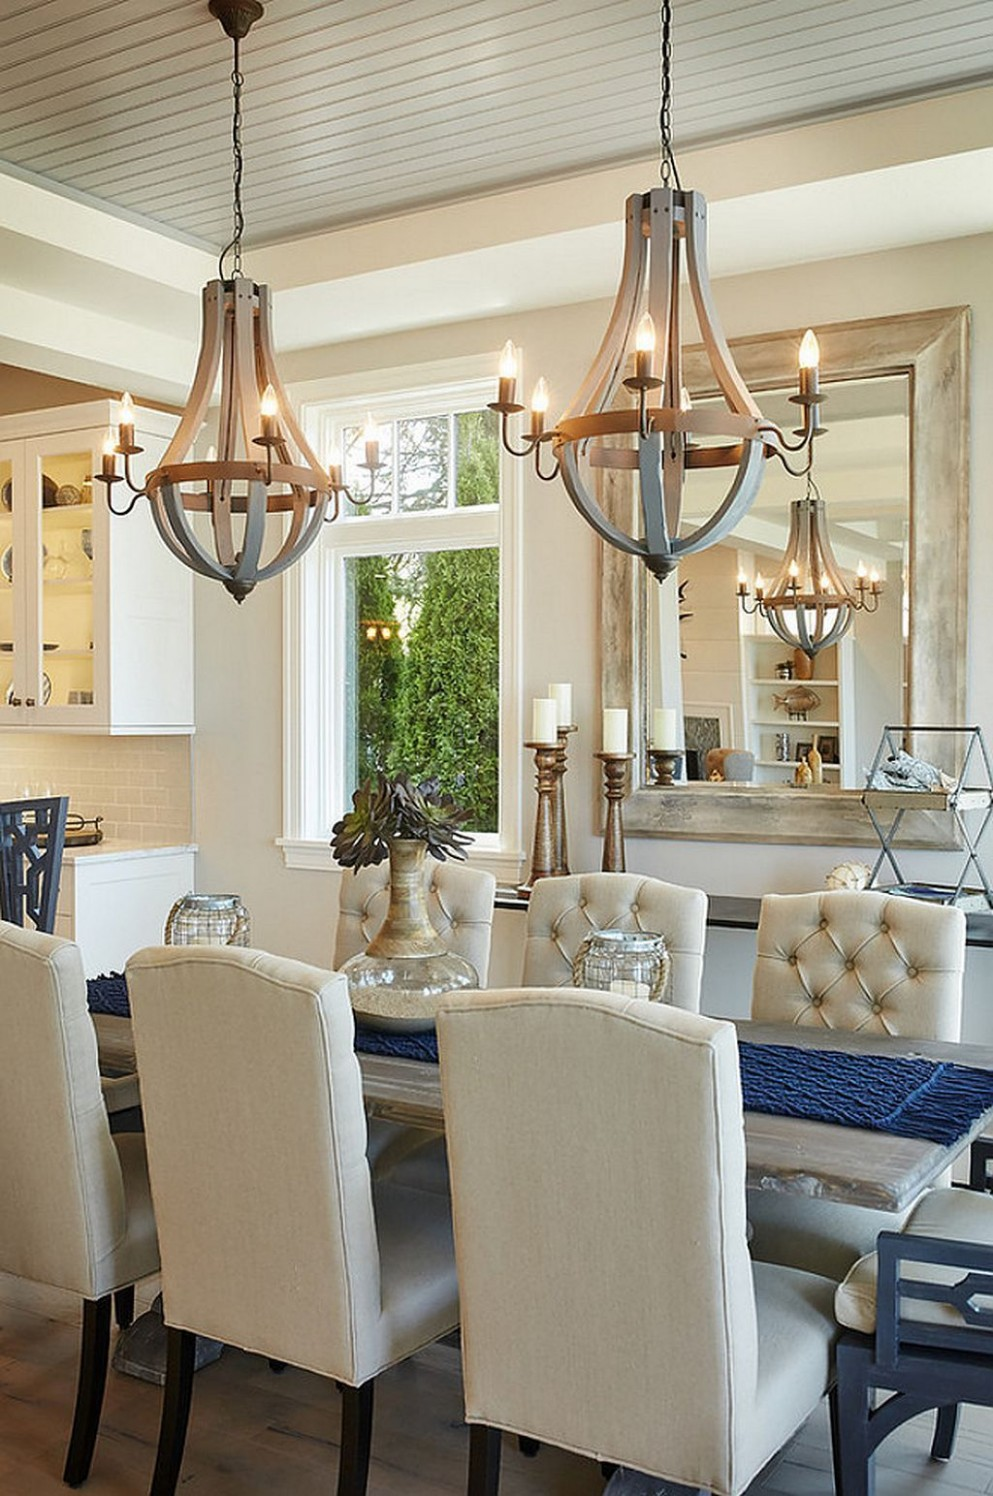 10 Dining Room Arrangement Ideas 10  Dining room light fixtures  - Dining Room Arrangement Ideas